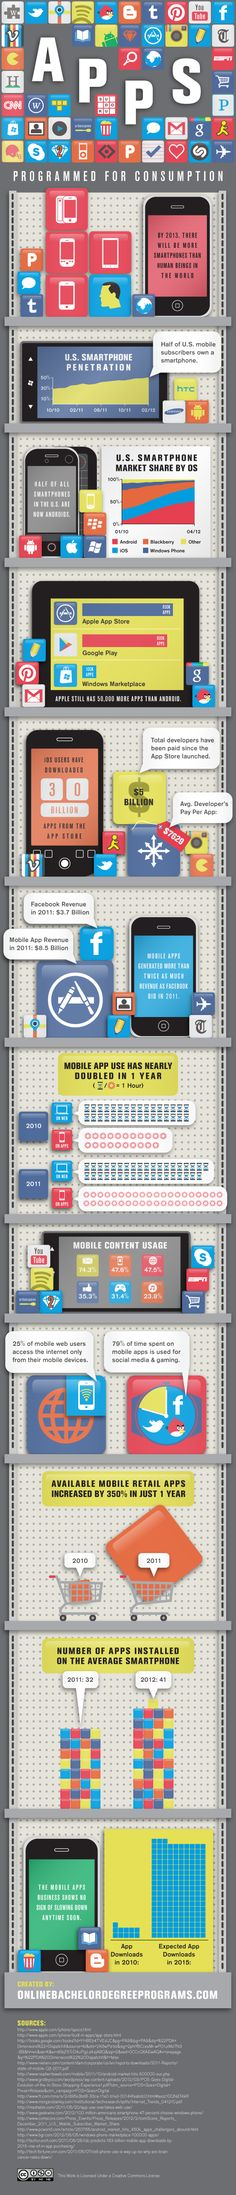 #Apps: Programmed for Consumption #mobile #appdev #infovis